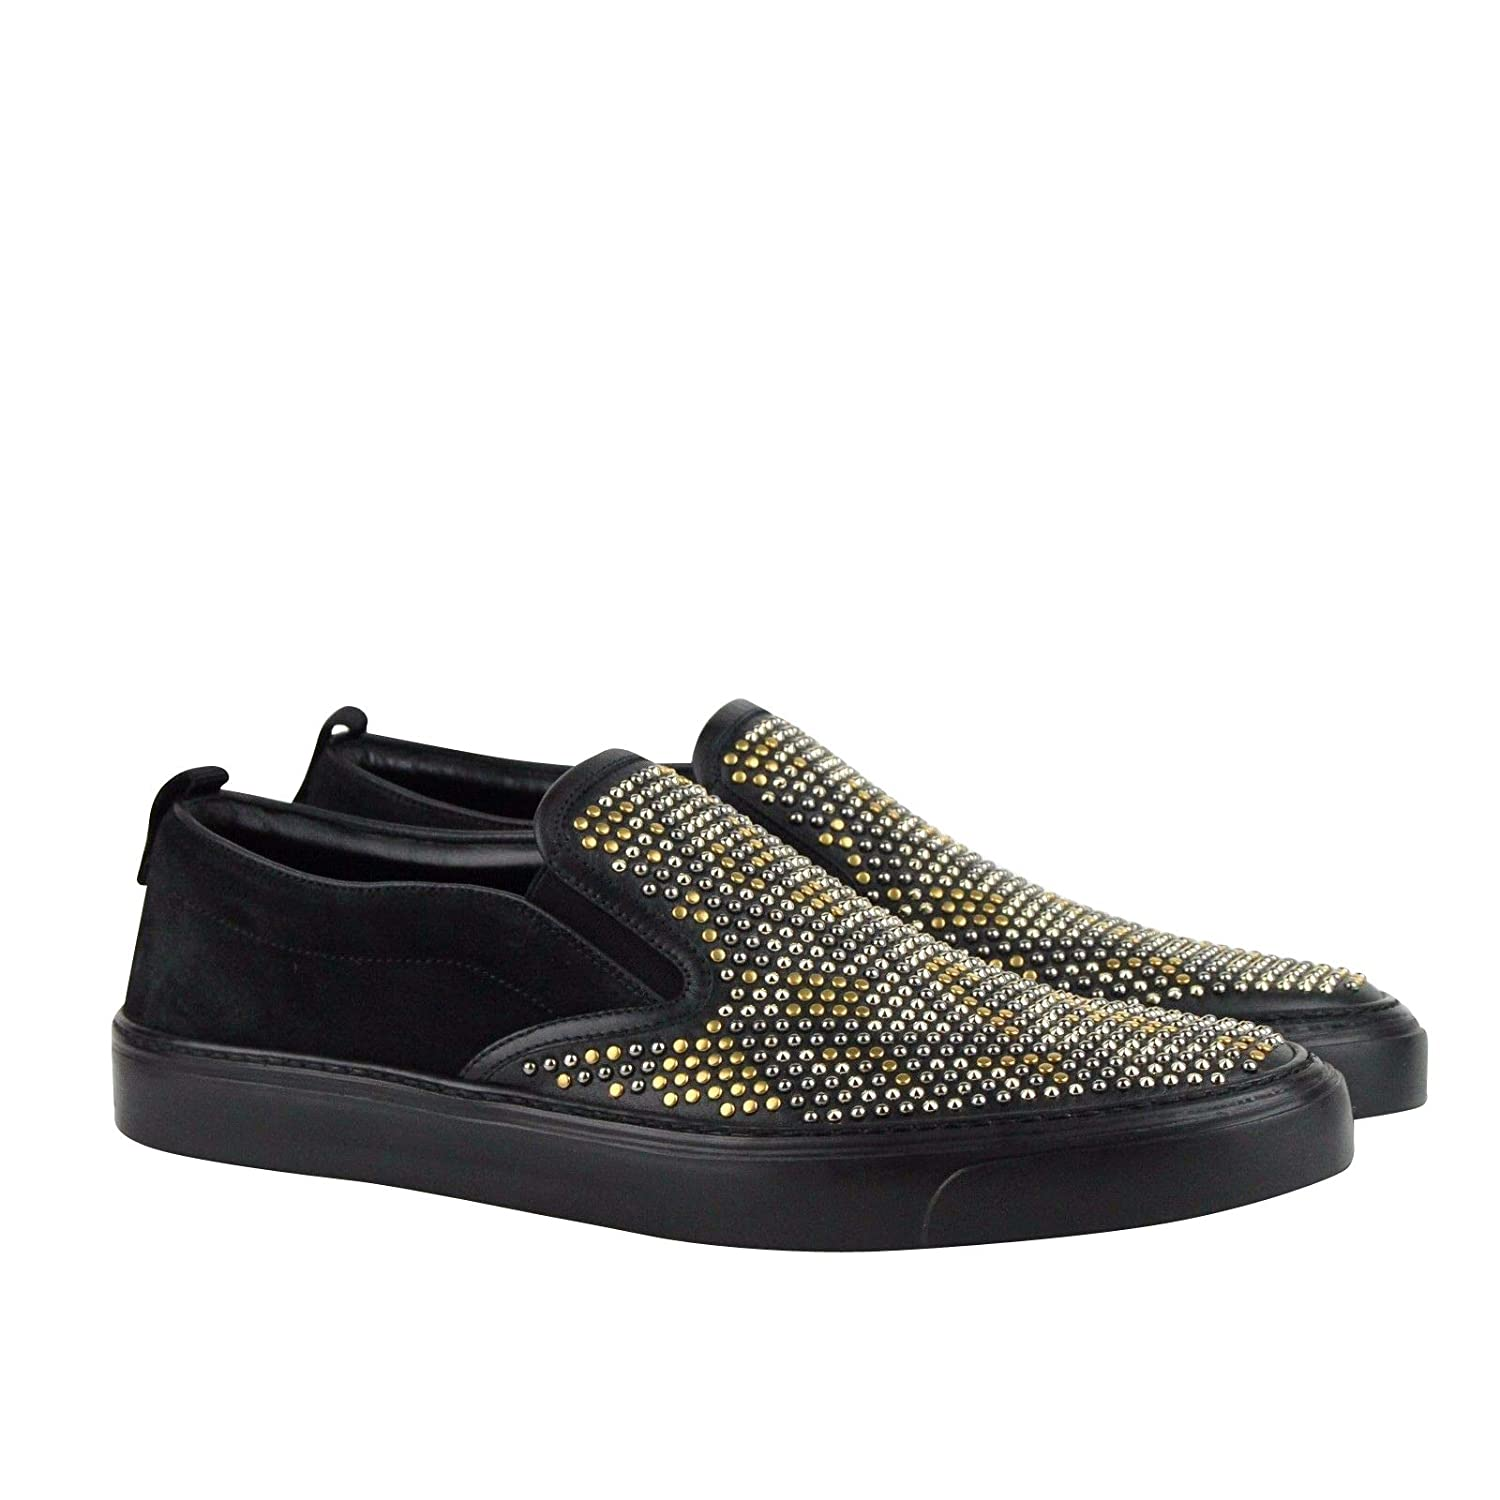 80c4272e098b49 Amazon.com: Gucci Studded Slip Black Suede Leather Shoes Sneakers 386777  1000: Shoes